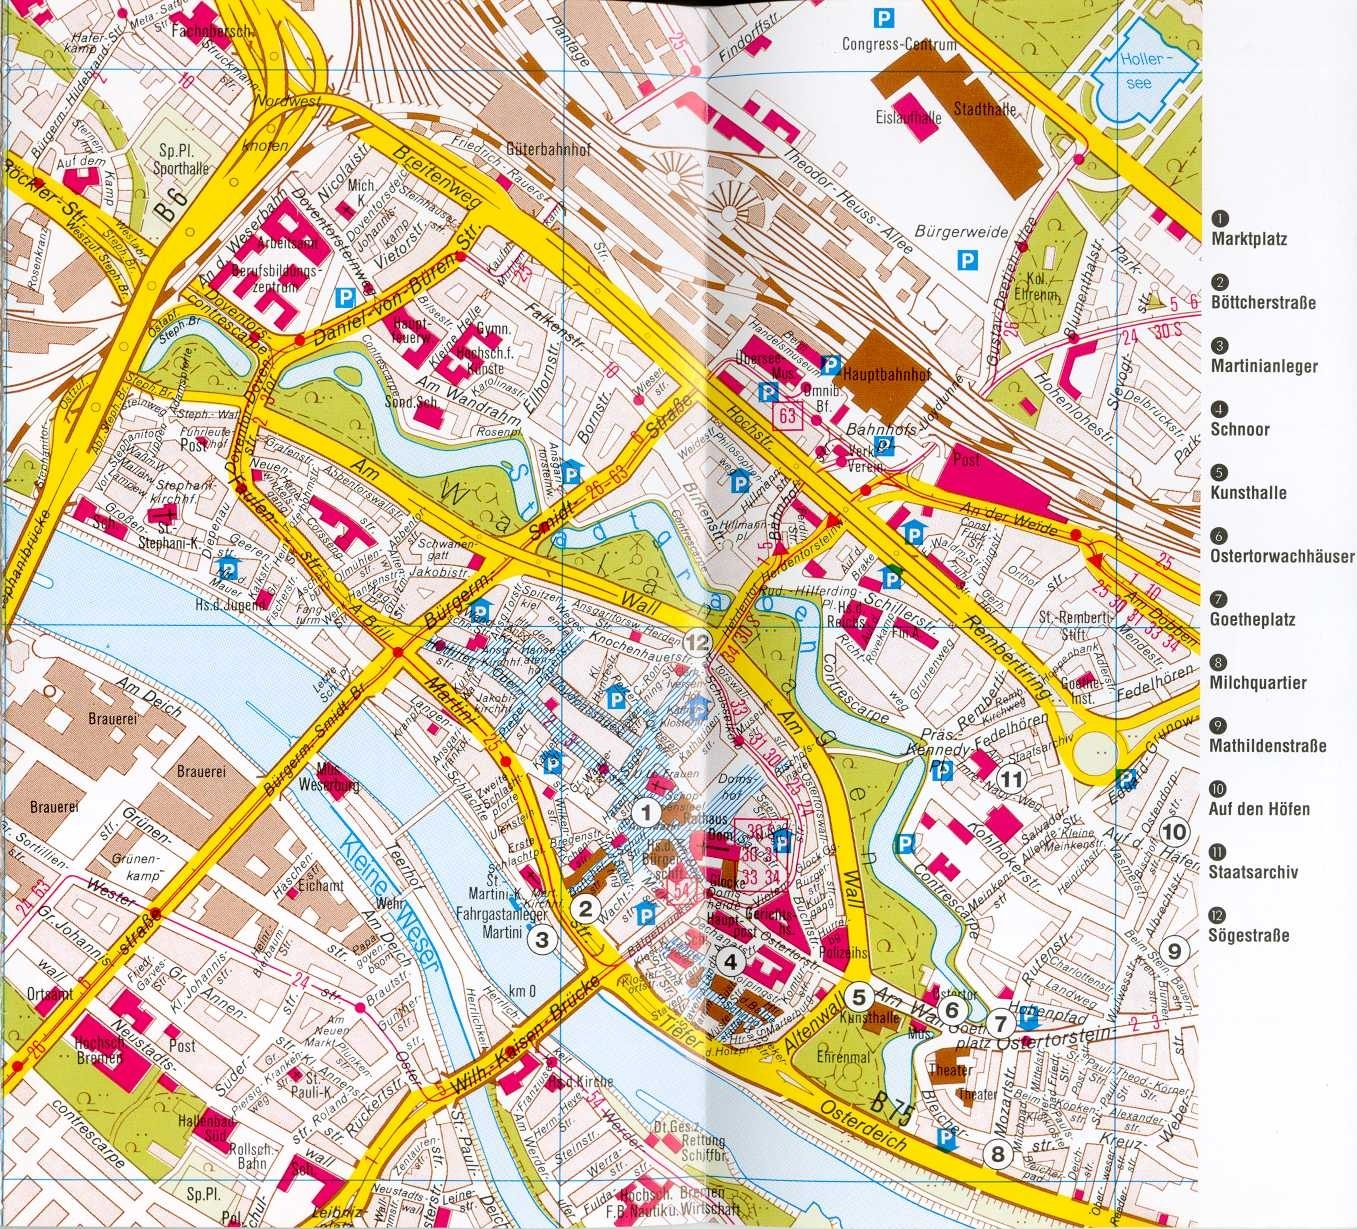 Bremen Map - Detailed City And Metro Maps Of Bremen For Download with Bremen On Map Of Germany